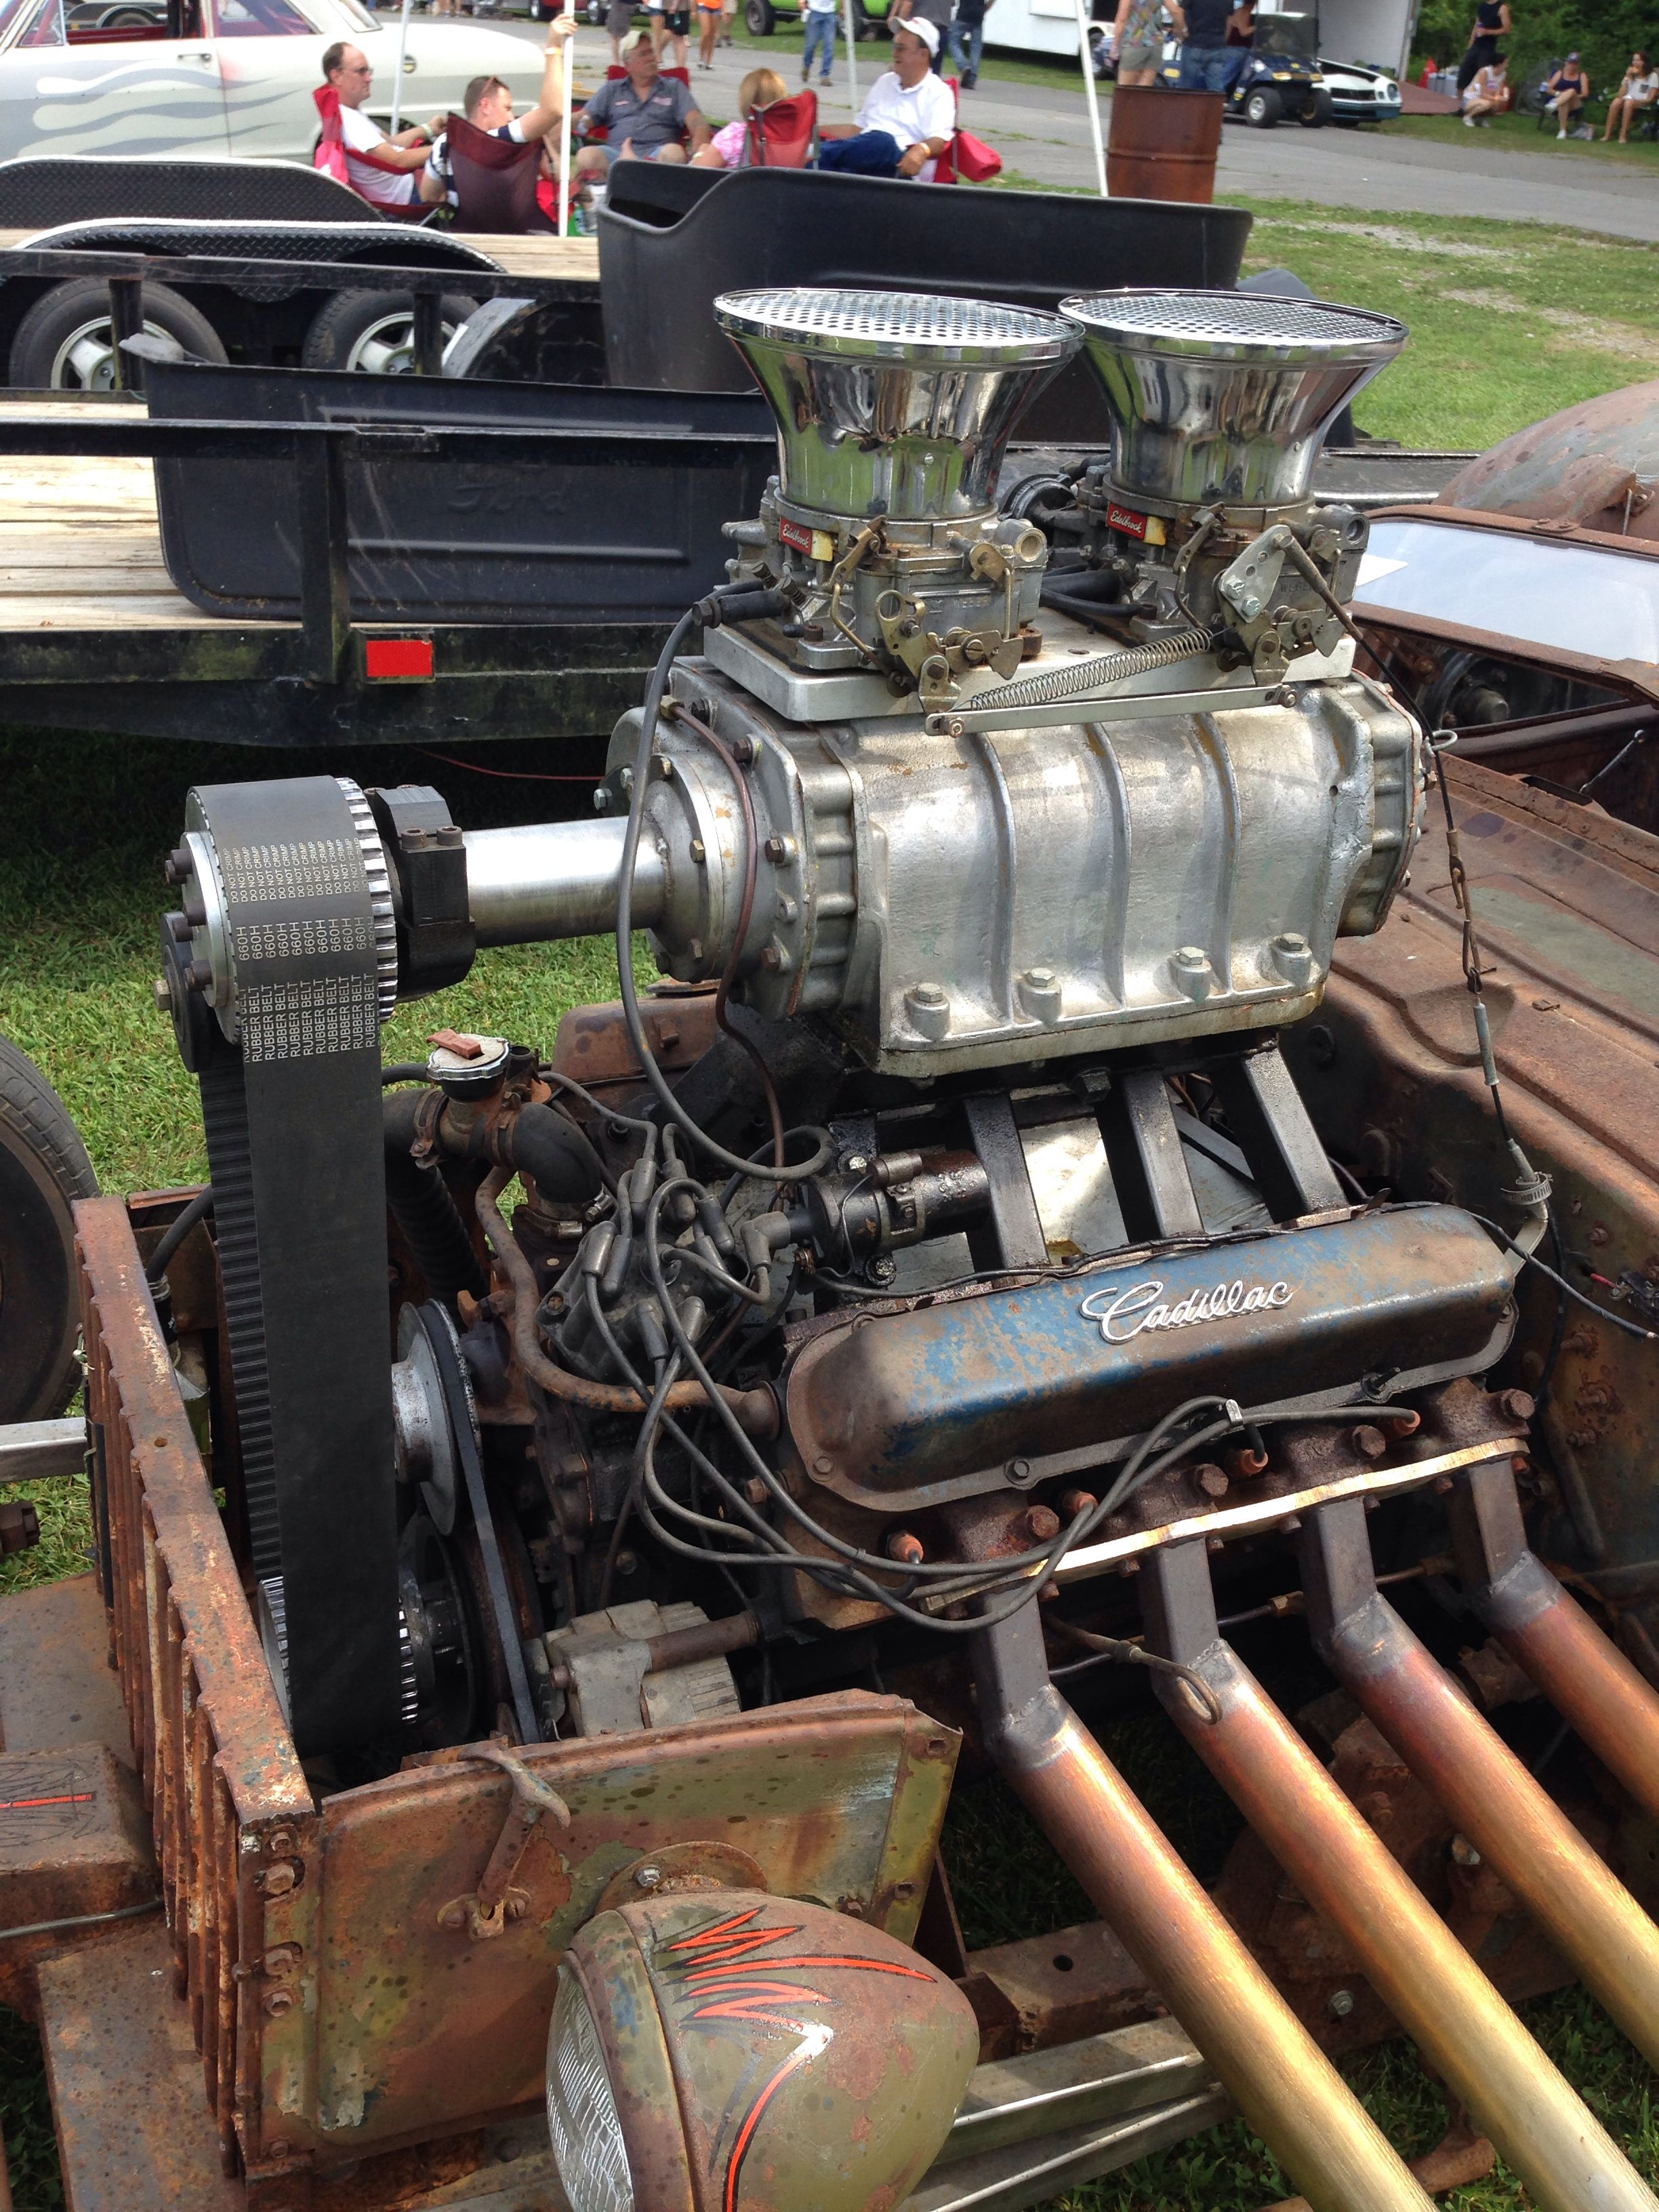 excessive hot stock questionable in jpg junkyard from cadillac a chain the articles rod also slack engines network building timing engine not is build set